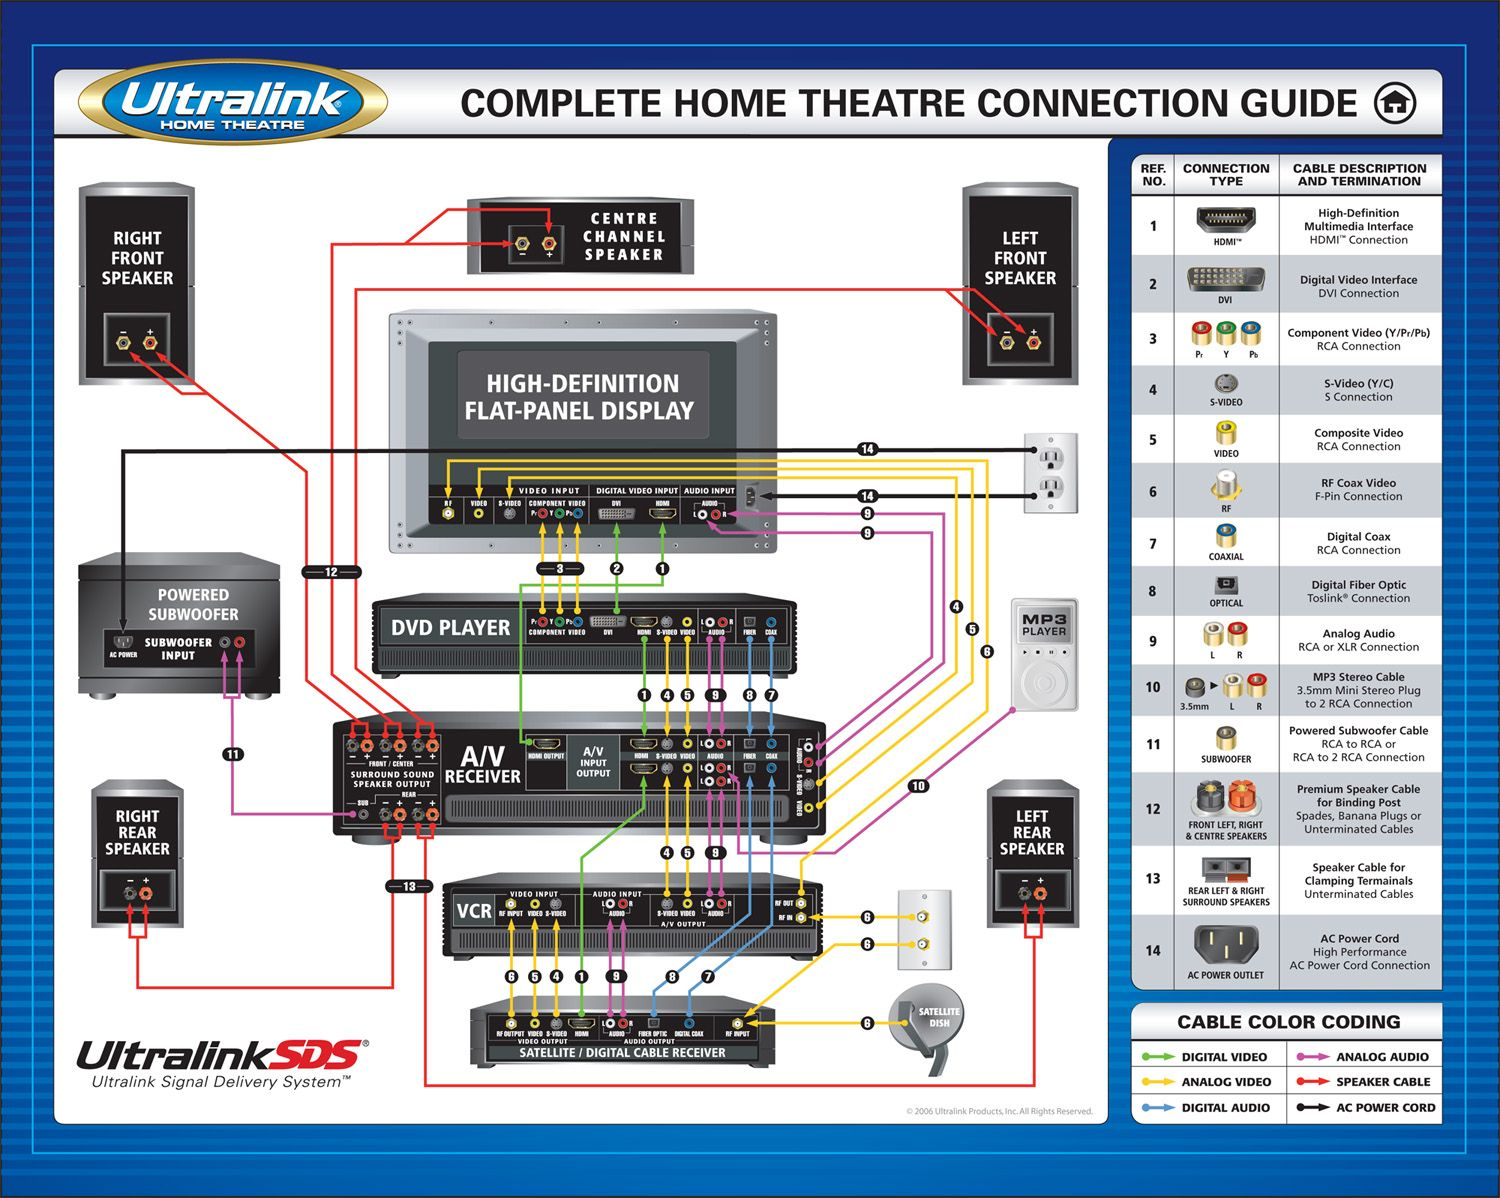 Home theatre connection guide, audio connections, video connections, setup